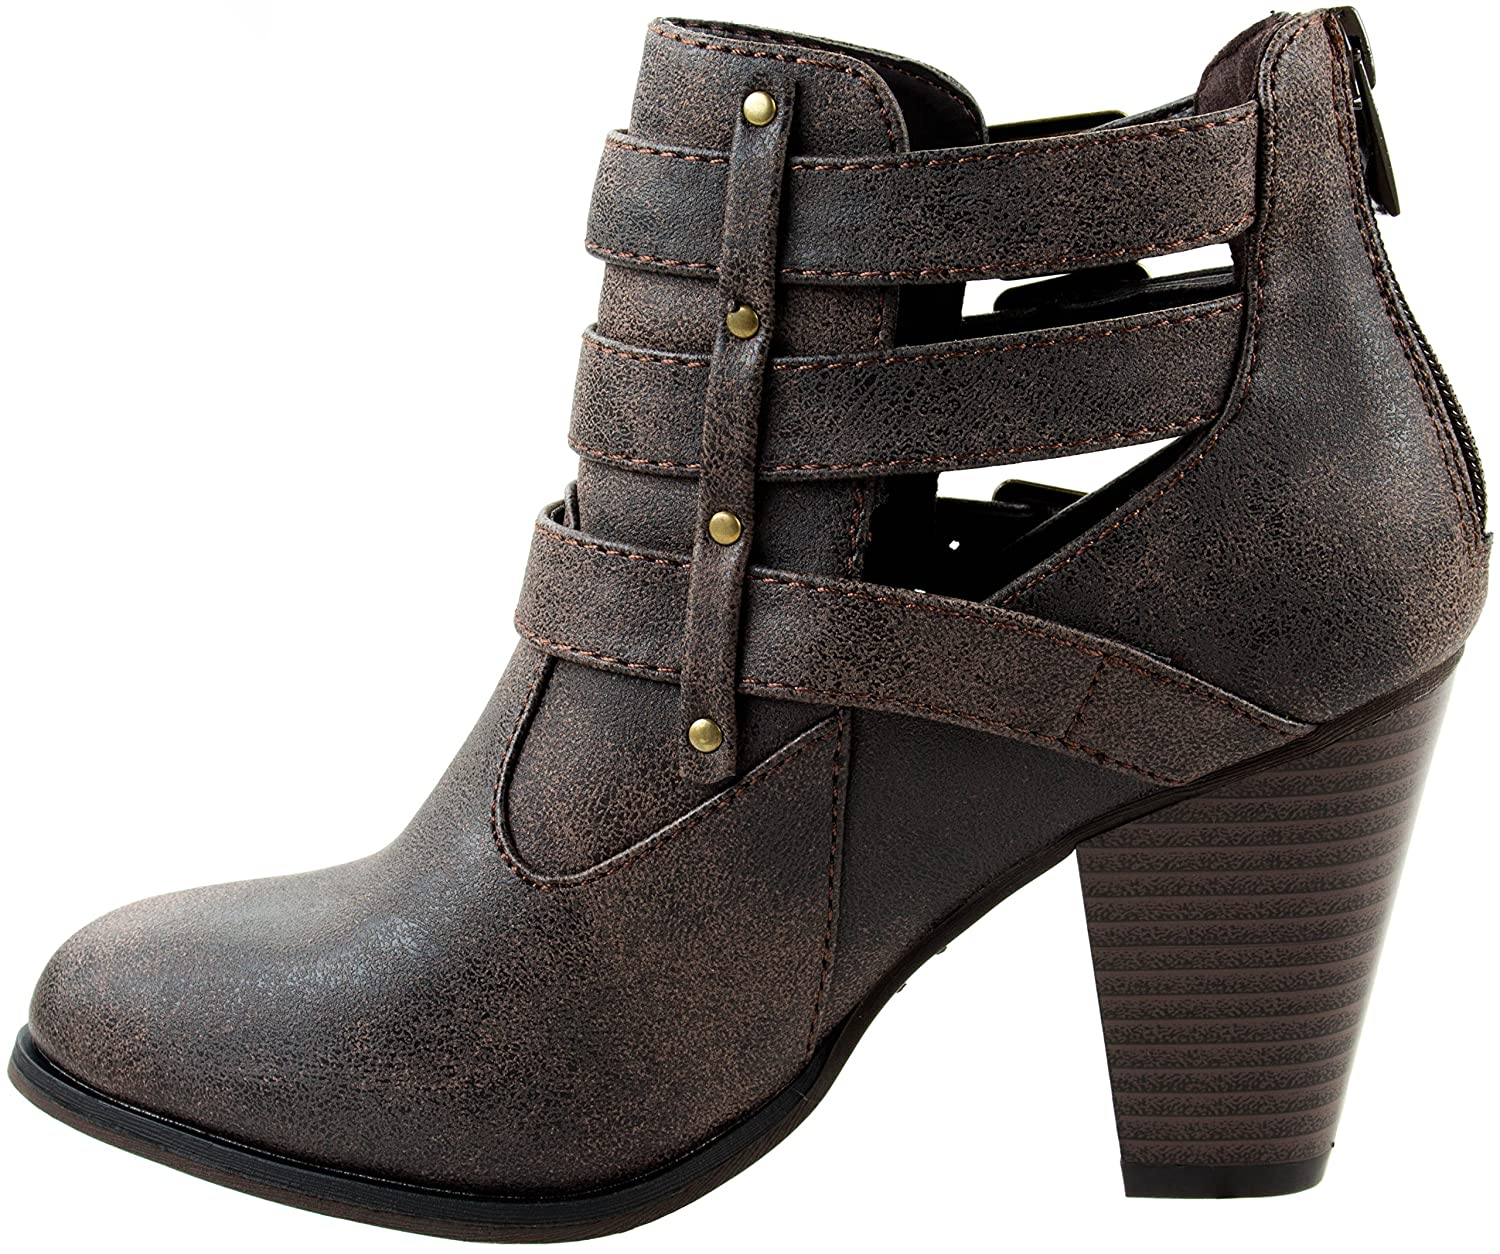 Forever Shoes Womens Camila 62 Short Ankle Riding Heels Wanita Suede 274 Boots Chunky Heel Three Buckled Strap Bootie